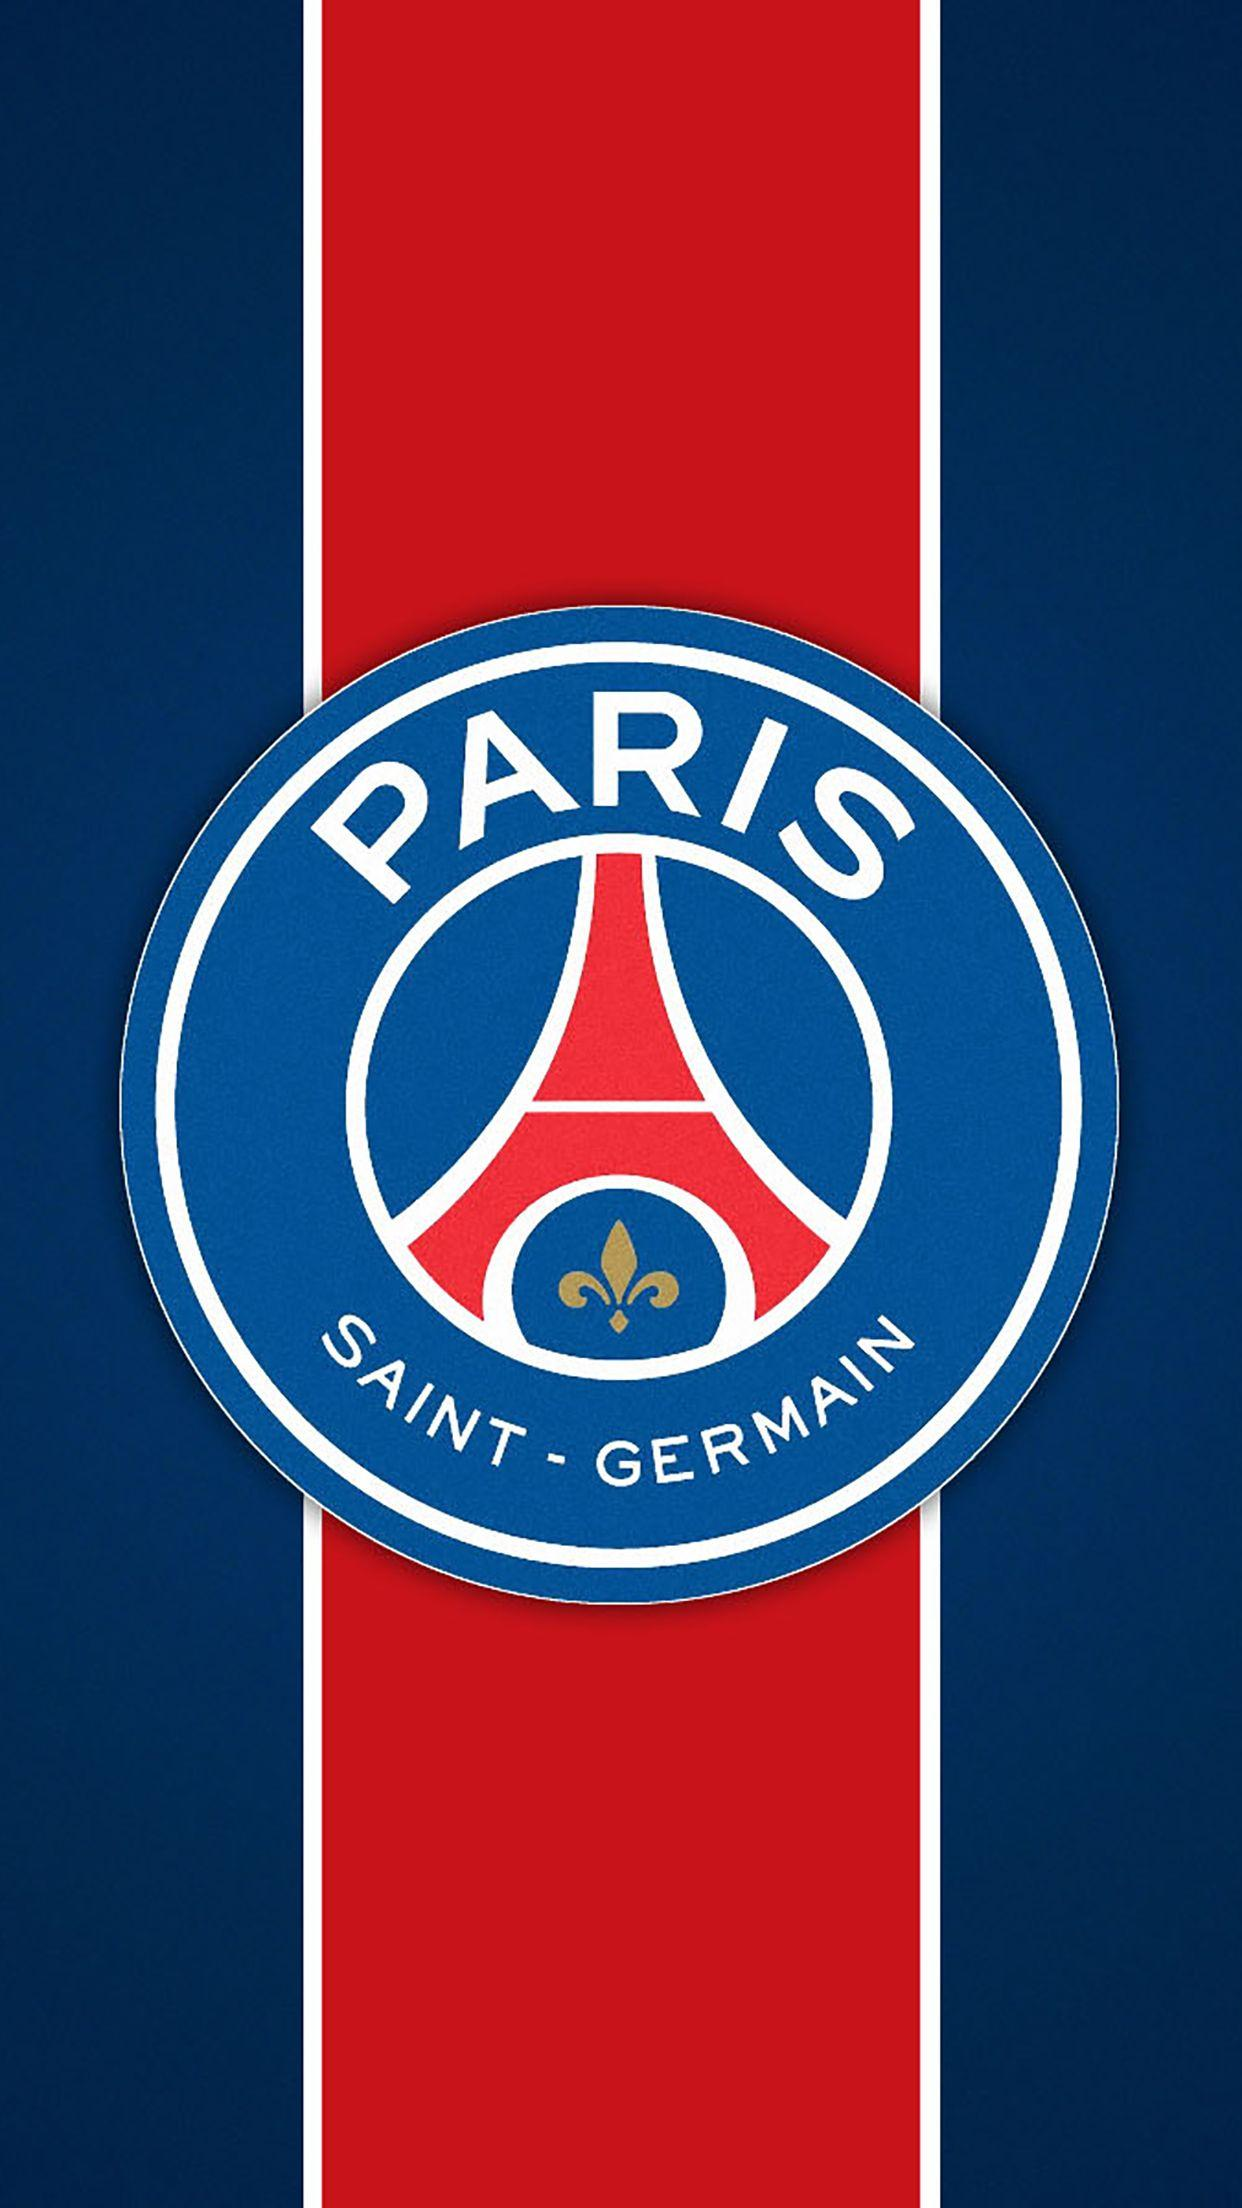 Wallpaper HD iPhone Paris Saint Germain (PSG) : Logo 1 - Free Download